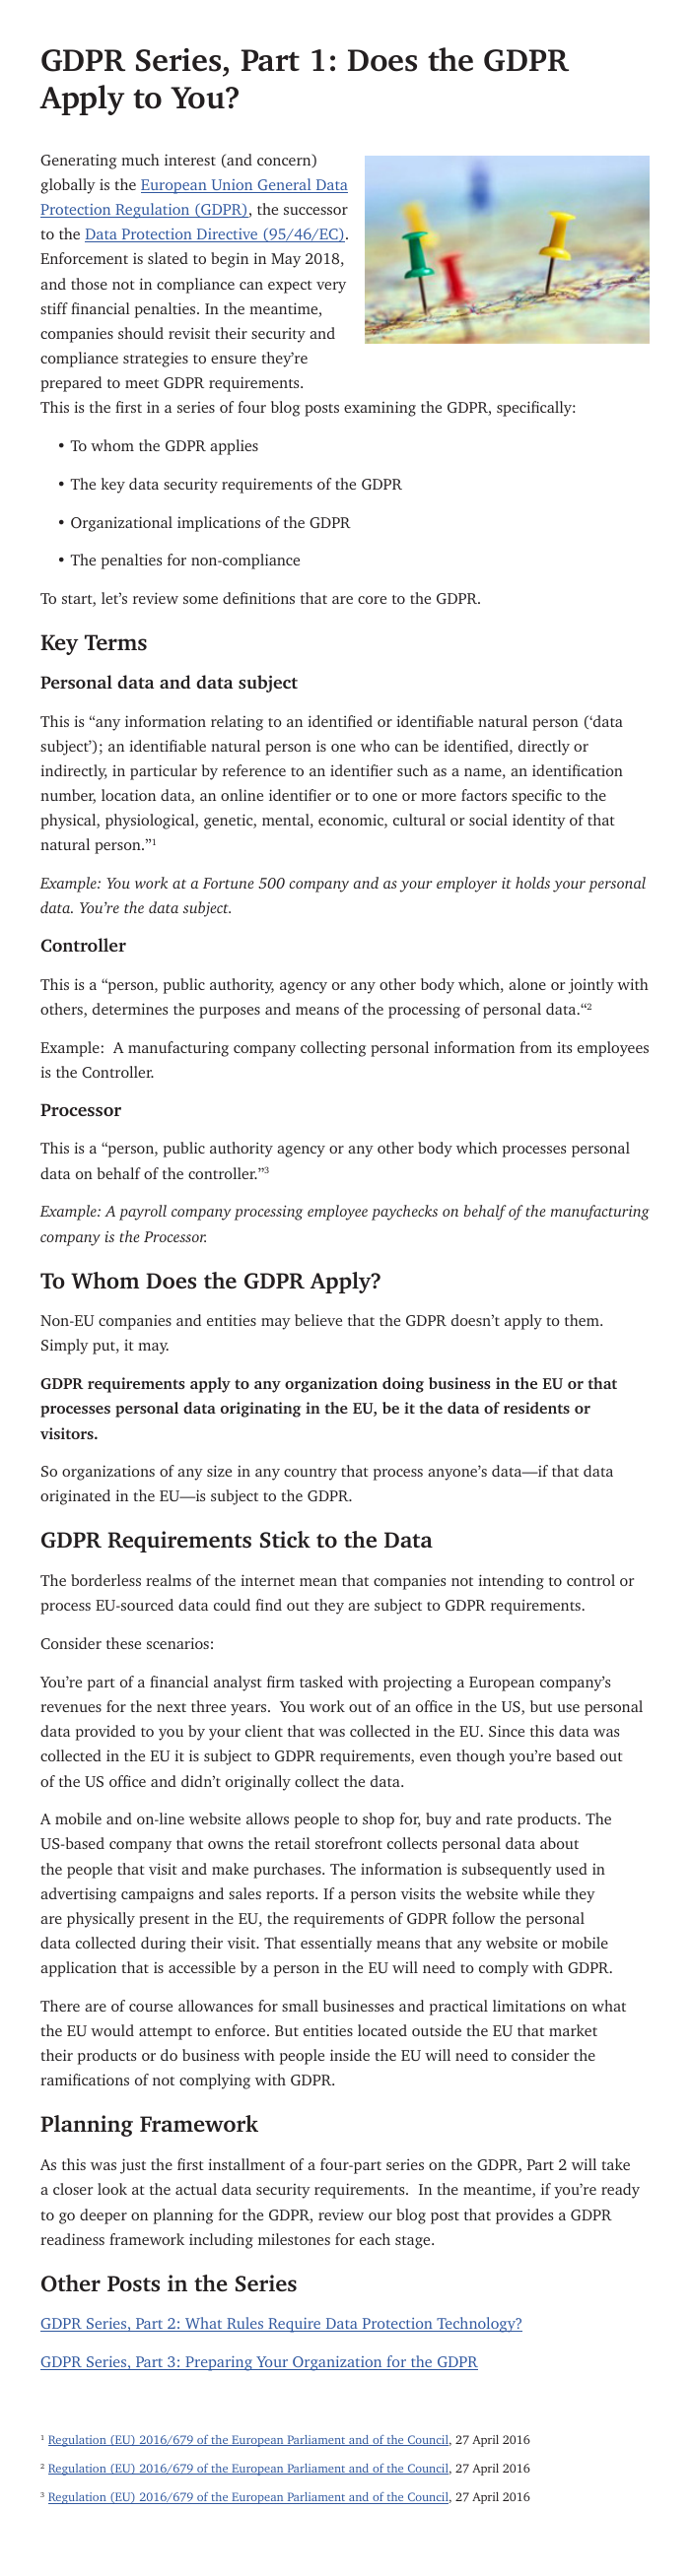 Blog 1: Does the GDPR Apply to You?